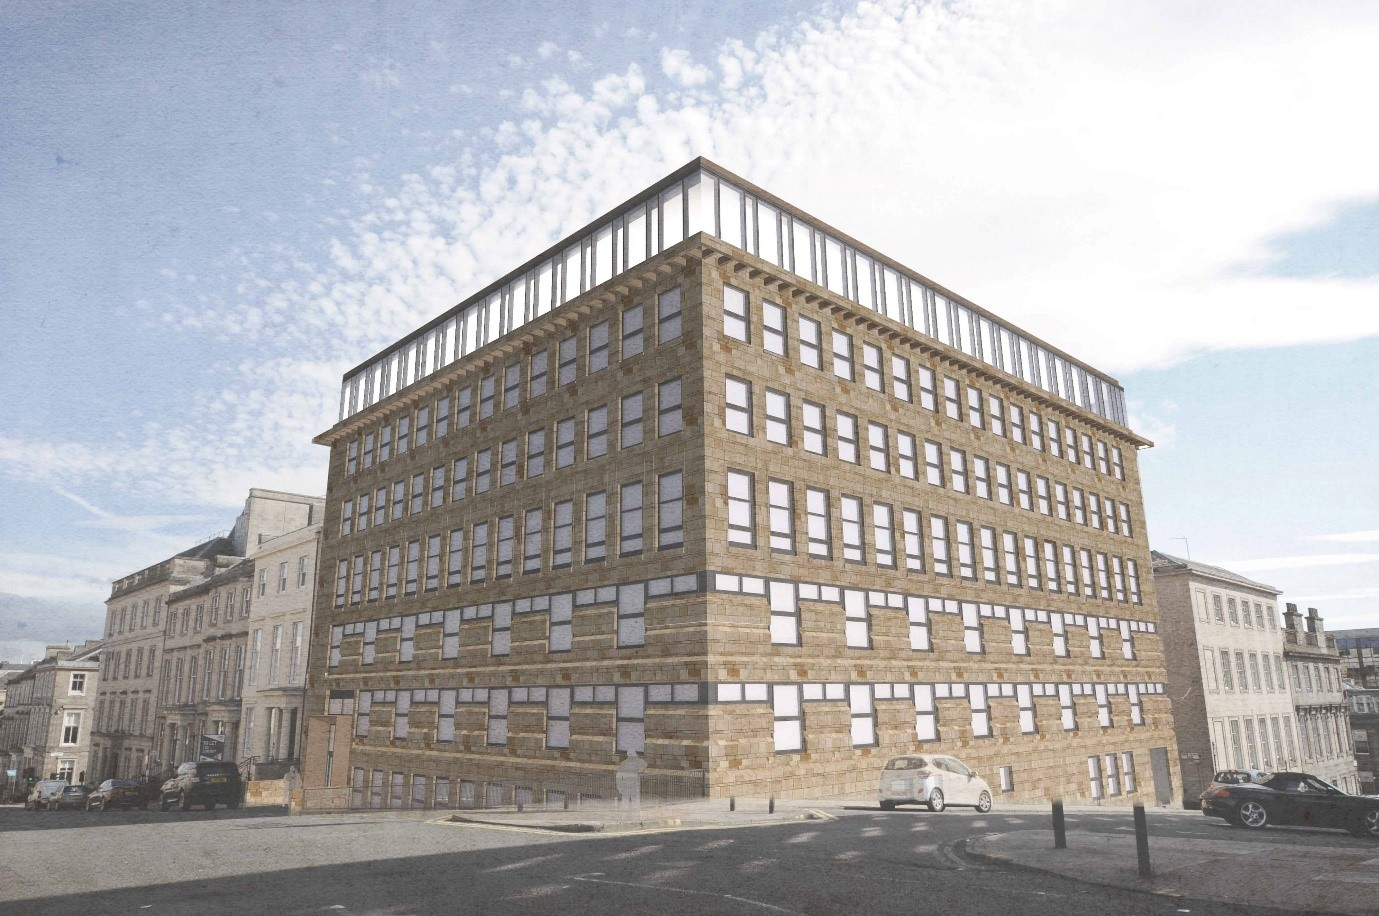 First Adina Apartment Hotel in UK earmarked for Glasgow as Mosaic submits planning application for Blythswood Square redevelopment